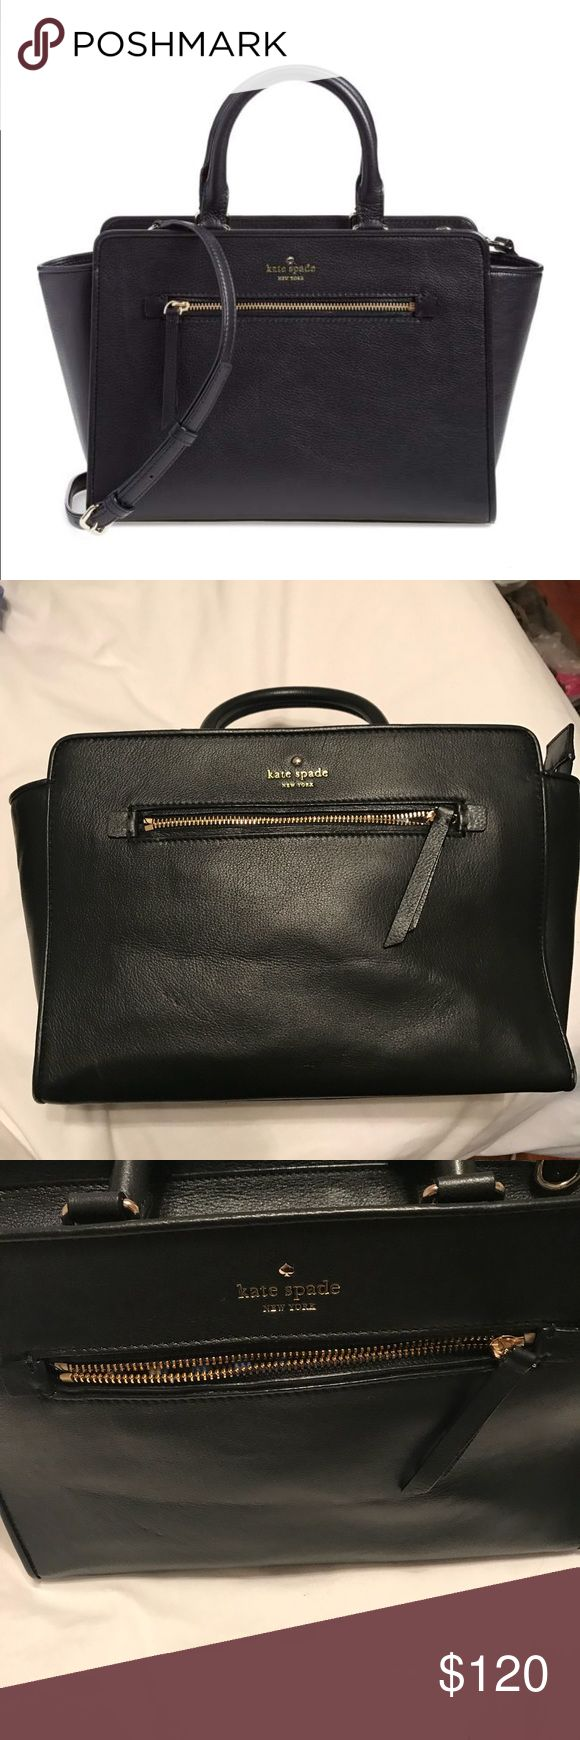 Kate spade handbag 12'W x 9″H x 5″W flaws shown. Just want gone offers accepted! North court coralline bag from Nordstrom anniversary sale 2015. Comes with crossbody strap and dust bag kate spade Bags Crossbody Bags